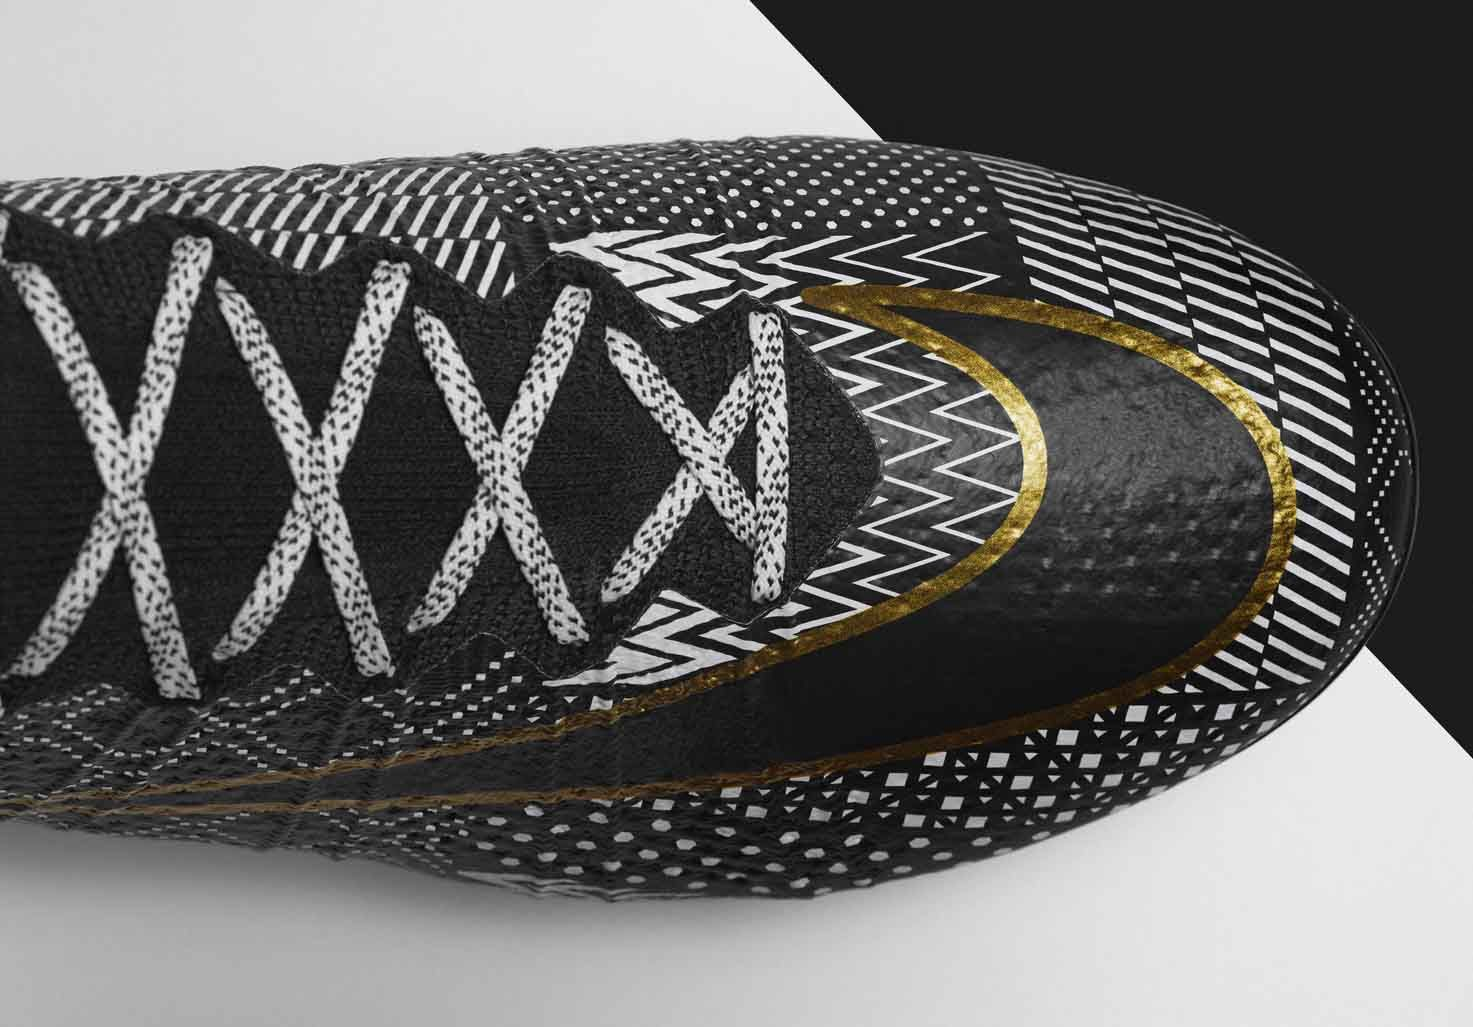 low priced dd072 faec2 Nike Mercurial Superfly Black History Month Boots Released ...